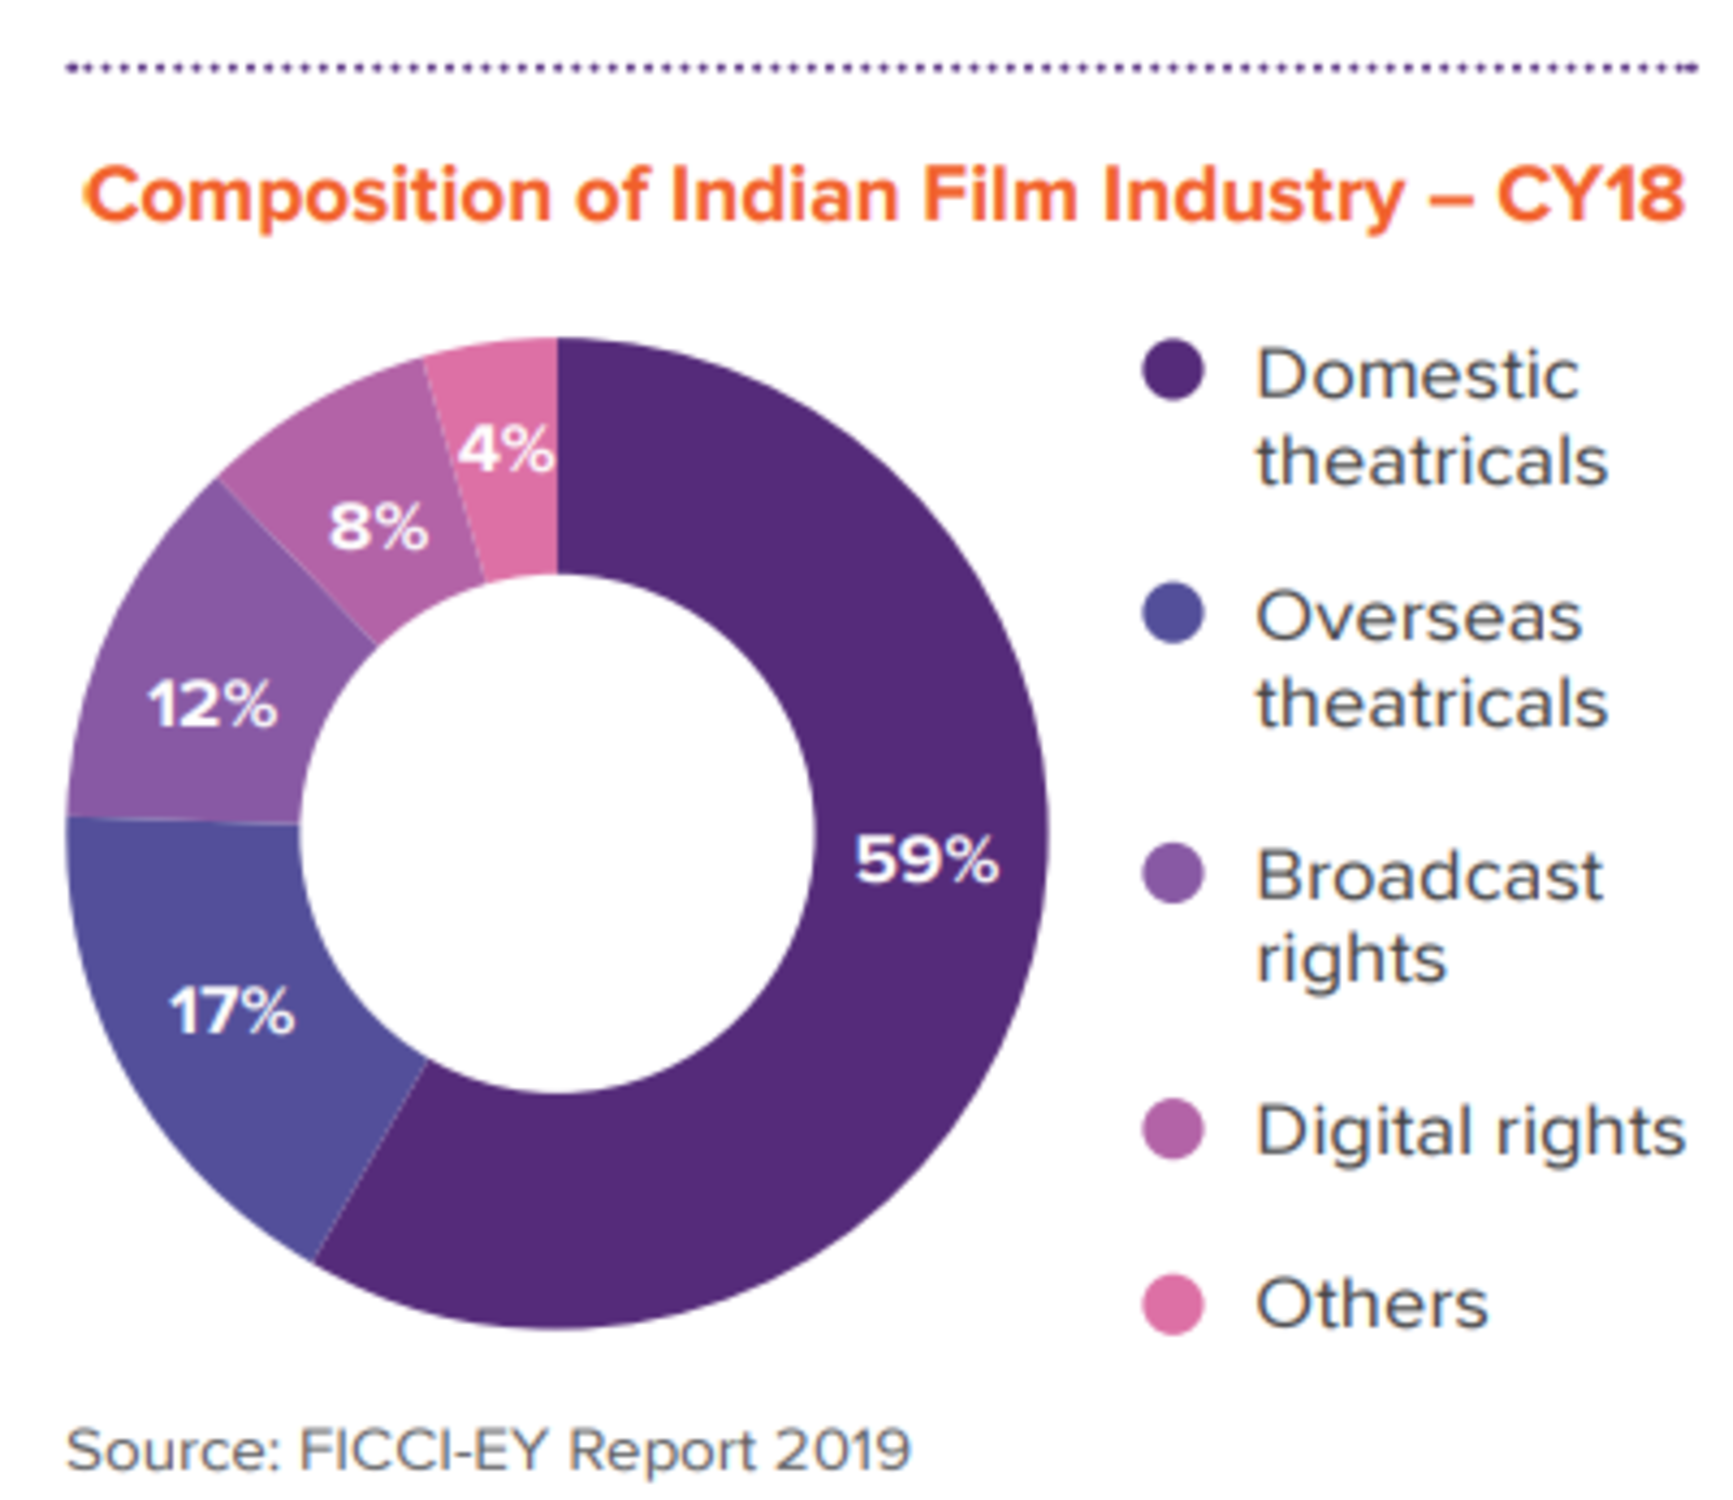 Composition of Indian Film Industry